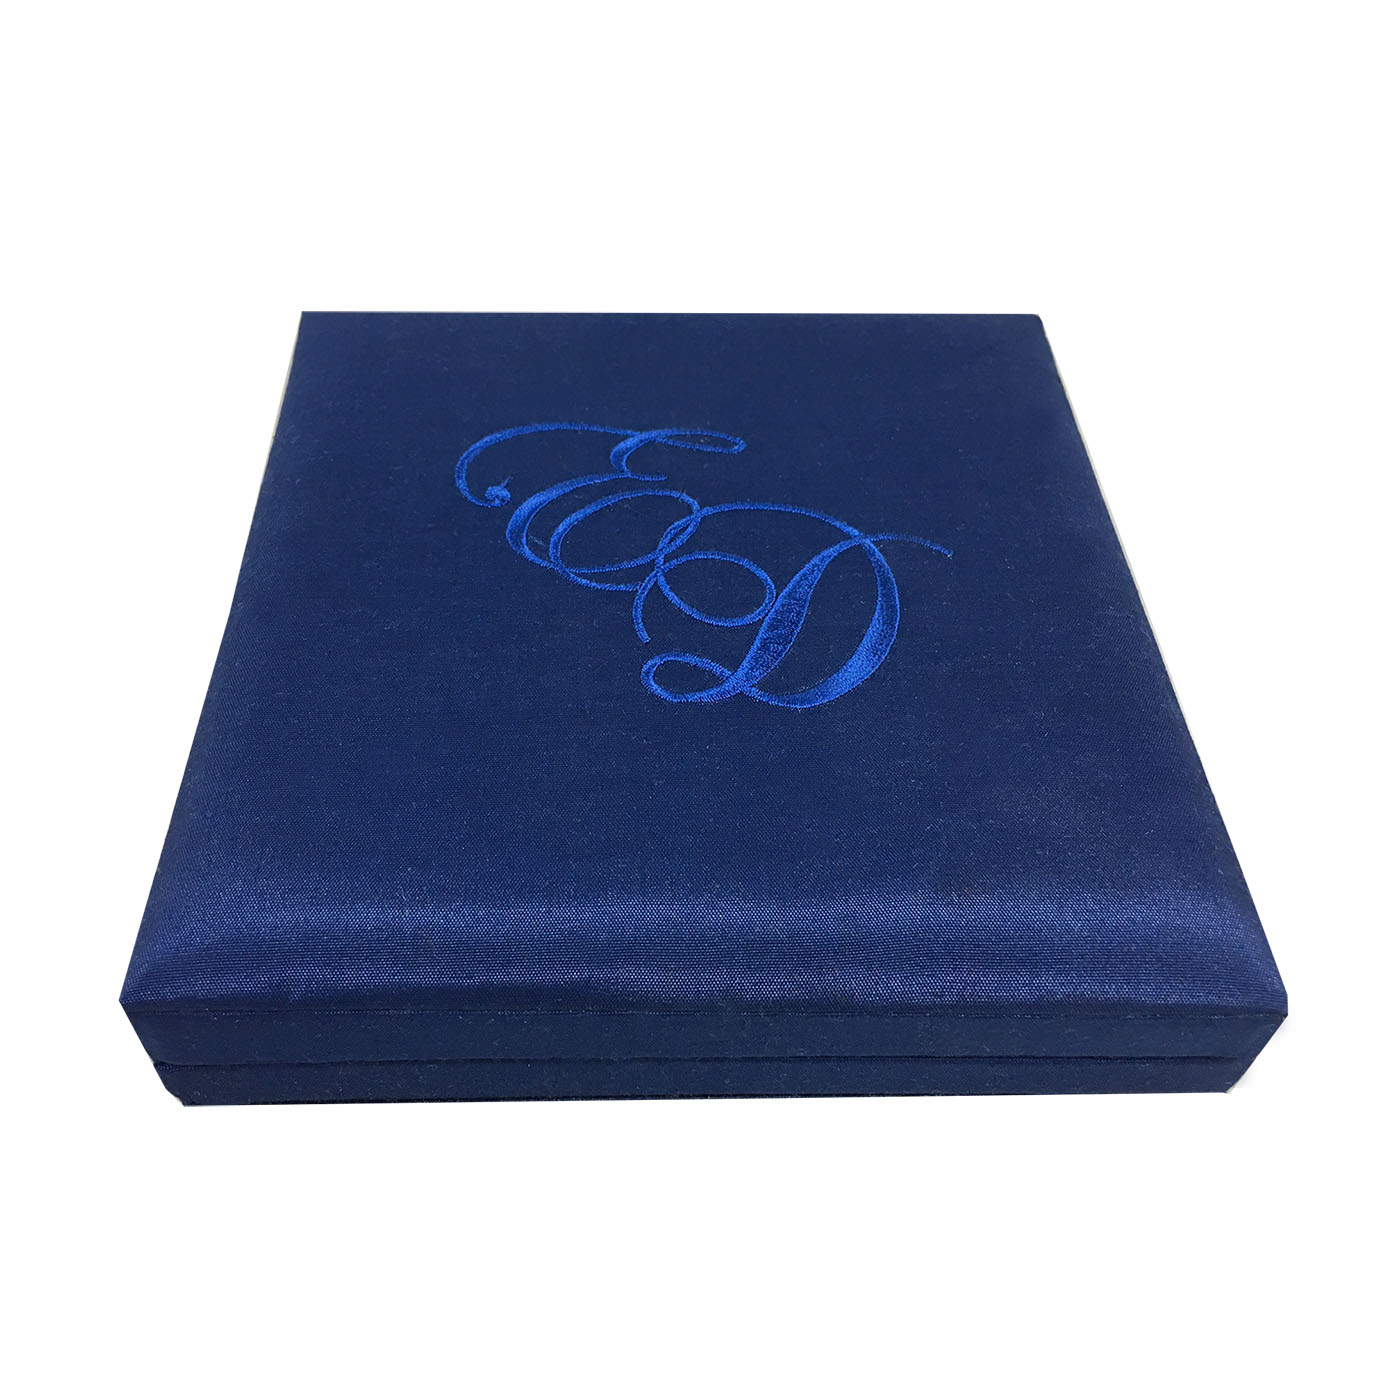 Royal blue silk wedding box with monogram embroidery